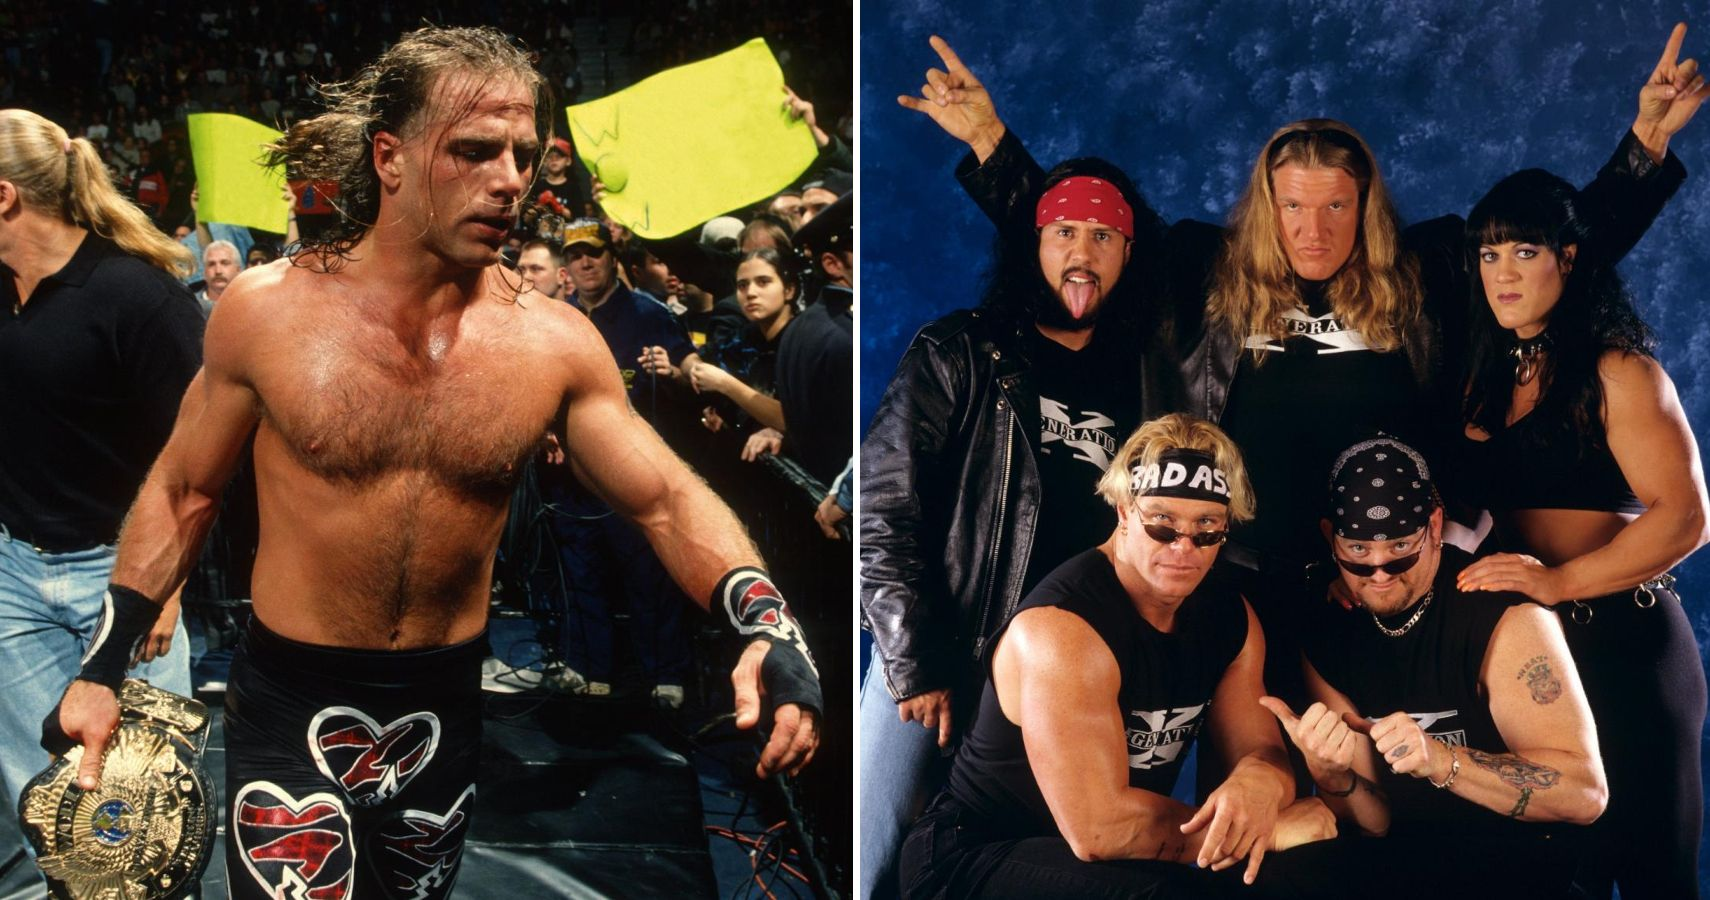 The Best Version Of D-X Was Without Shawn Michaels | TheSportster